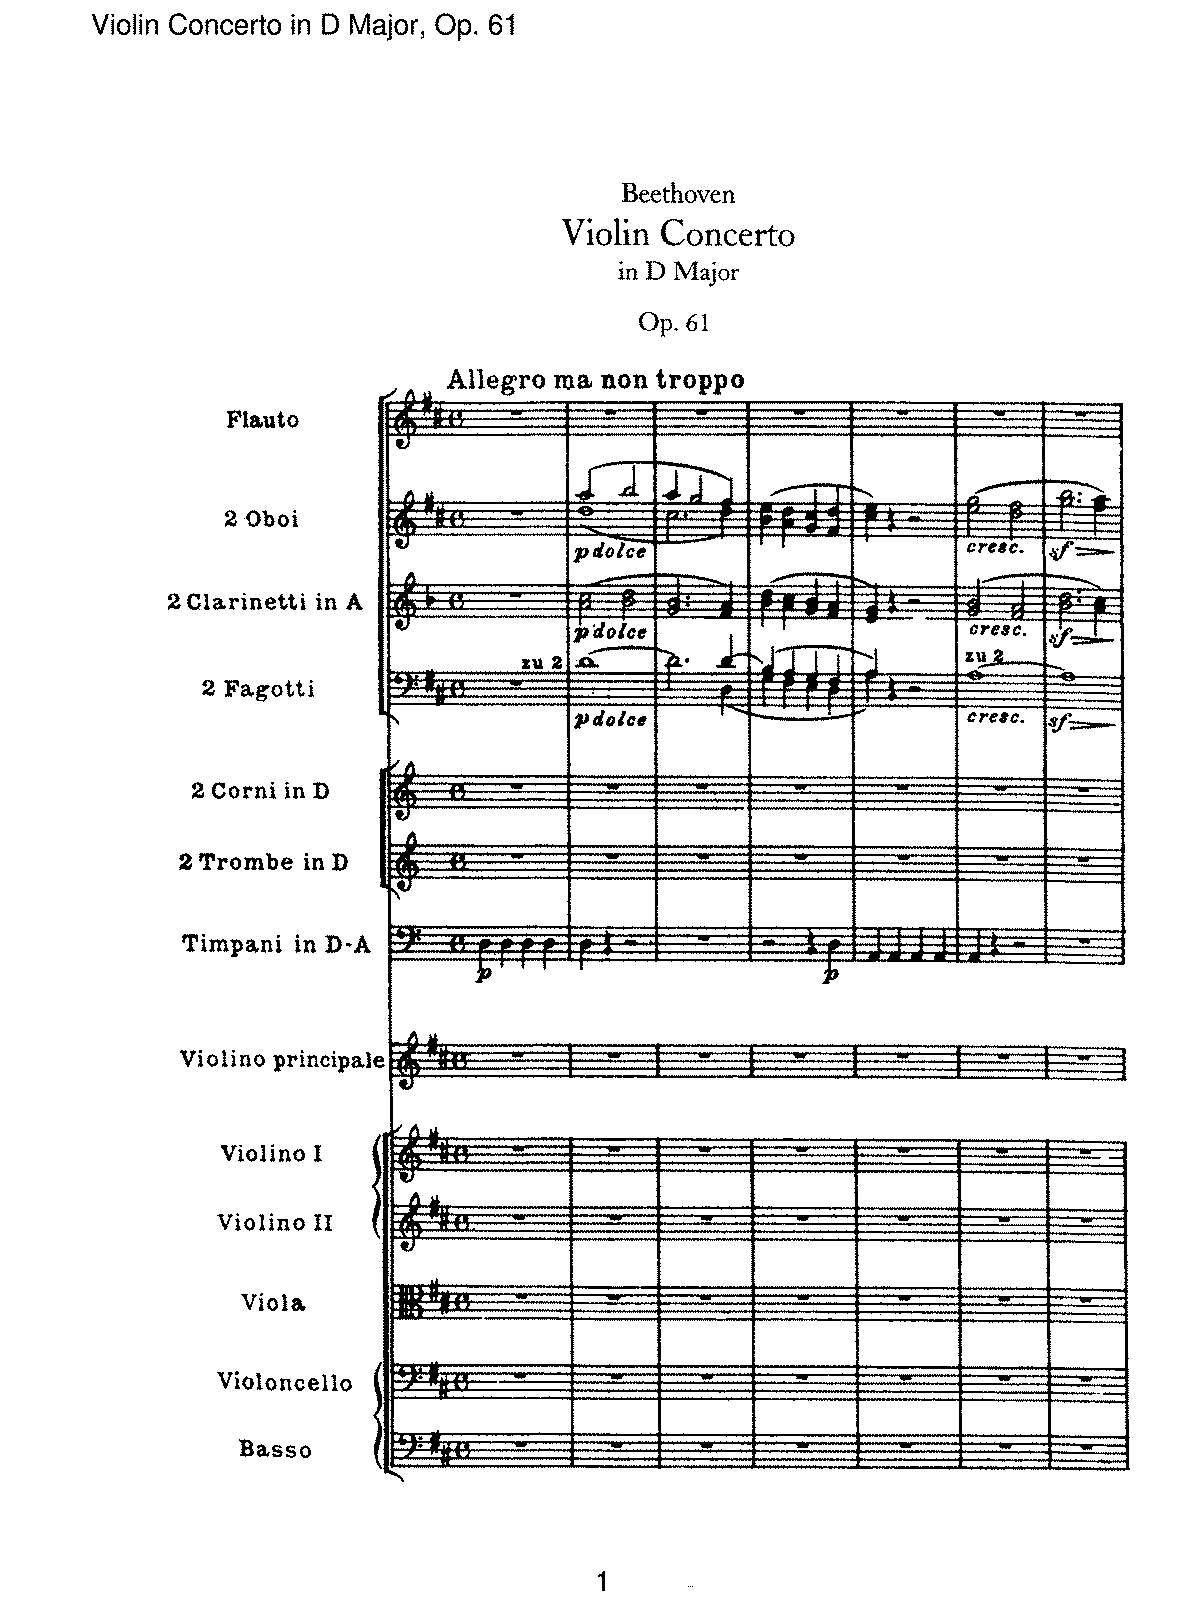 Beethoven - Violin Concerto in D Major, Op 61 - I - Allegro ma non troppo.pdf